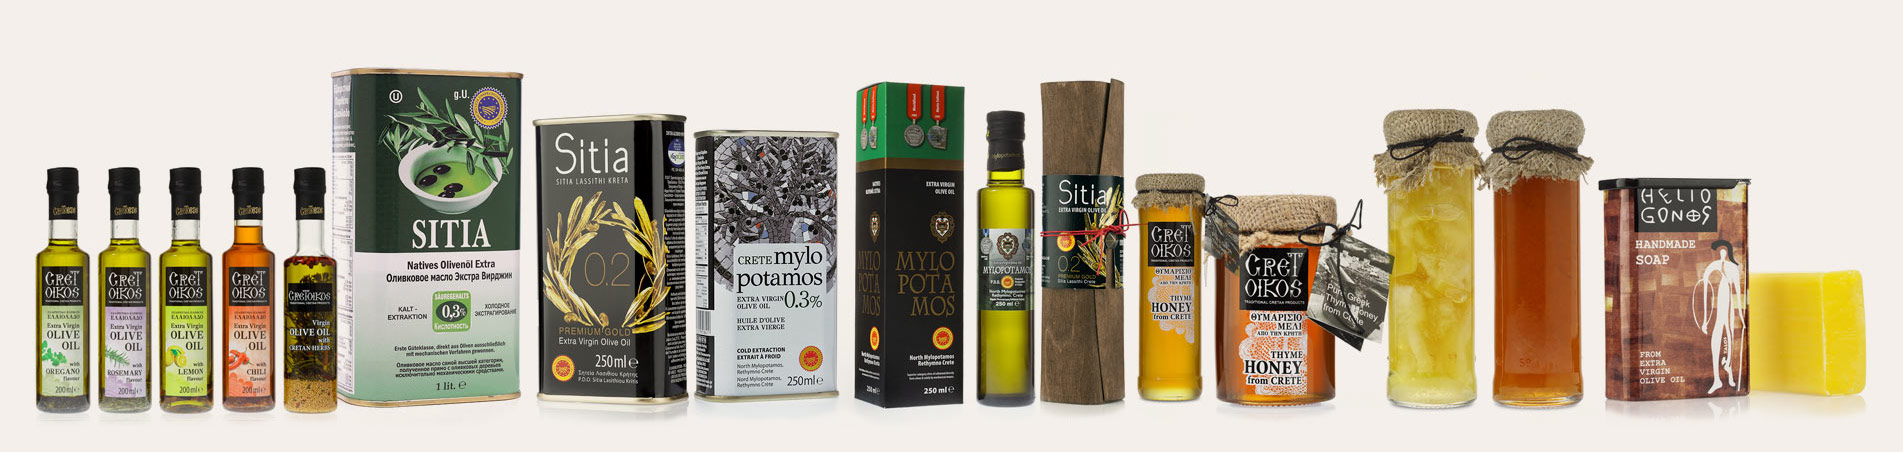 Our EVOO Olive Oil Products - BUY ONLINE!